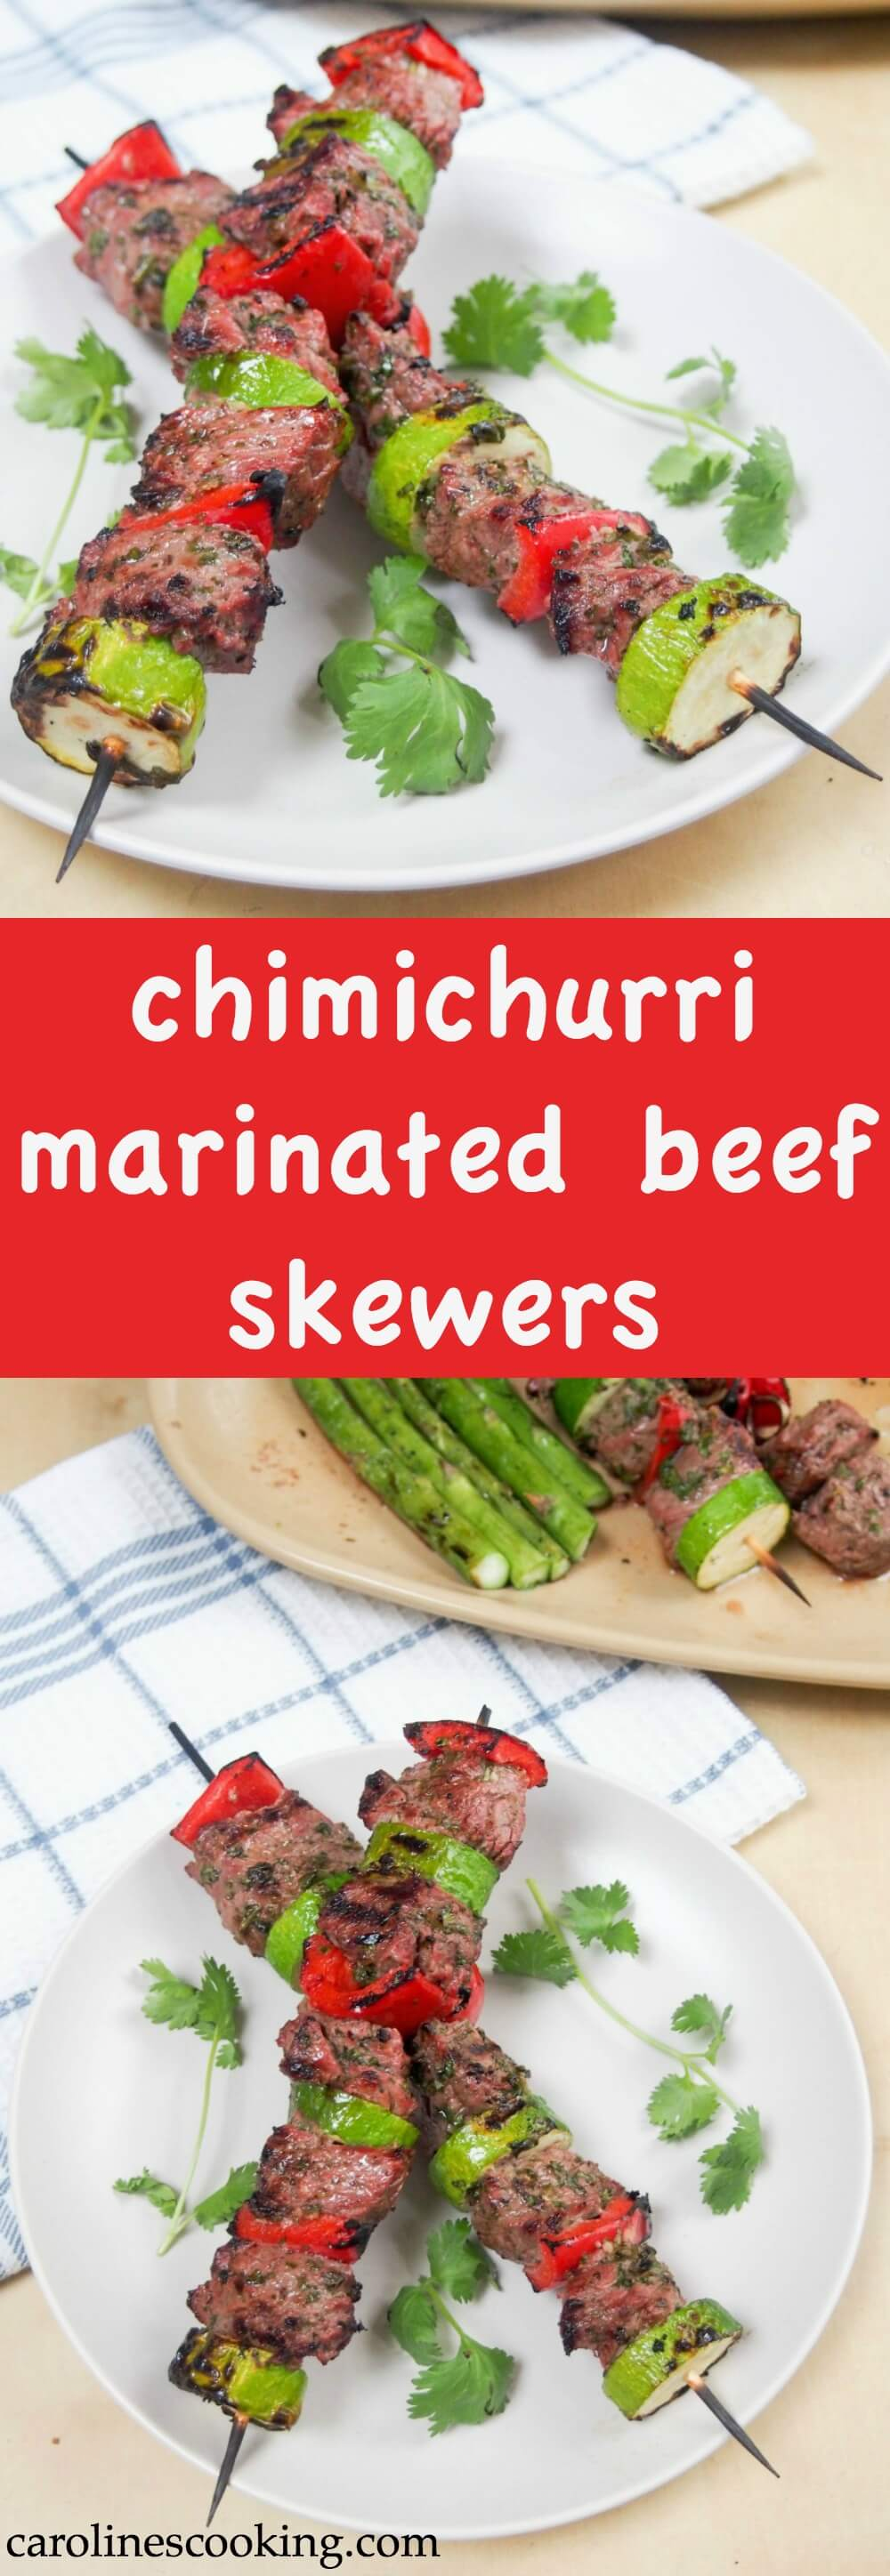 Chimichurri marinated beef skewers - easy to make, tender and packed with delicious herb, garlic and chili flavor. Perfect for an easy, flavorful meal.